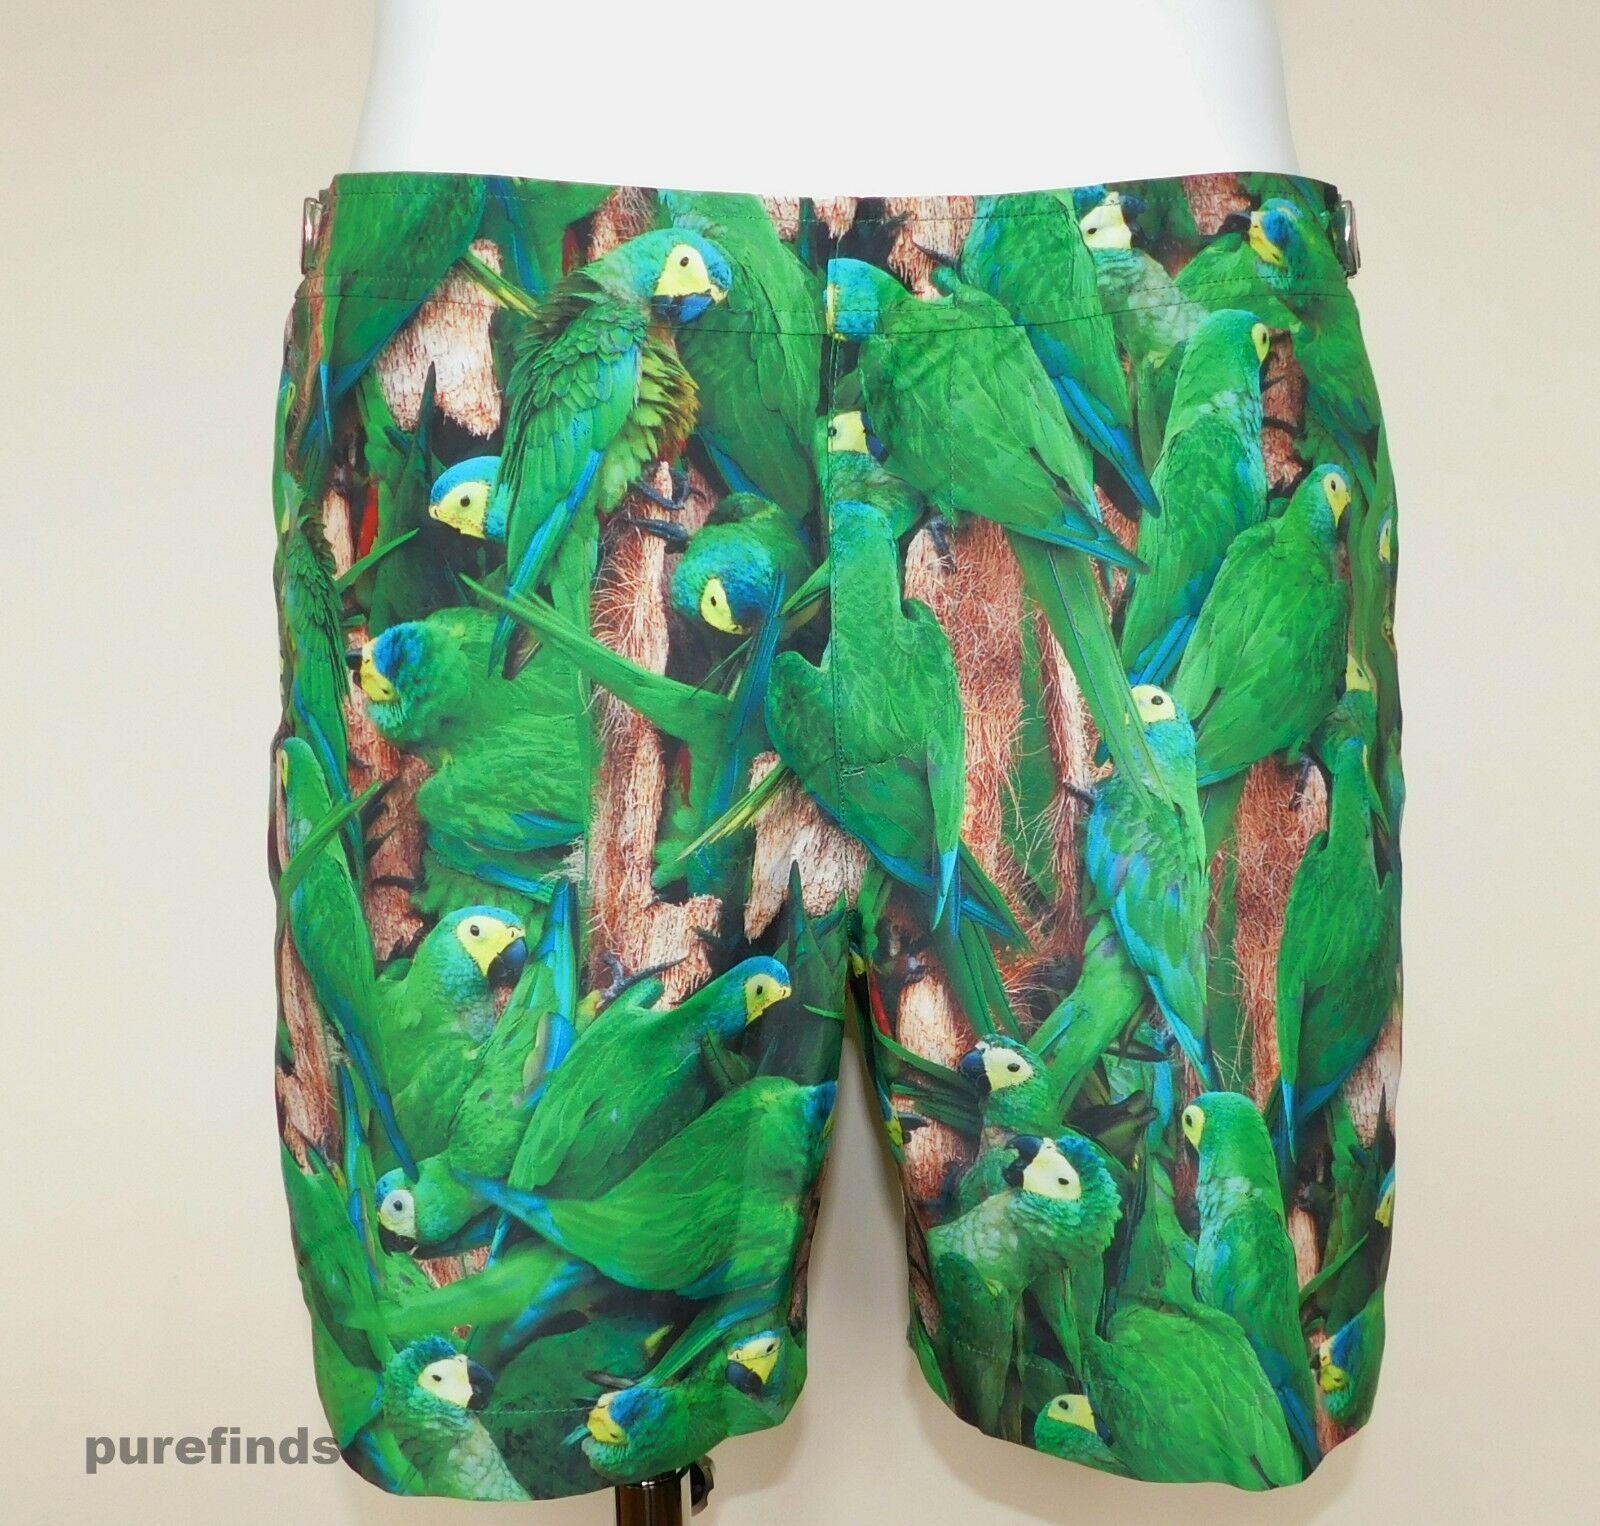 ORLEBAR BROWN BULLDOG FAUNA PRINT SIZE 36 SWIM SHORTS+BAG, PARAKEETS, BNWT